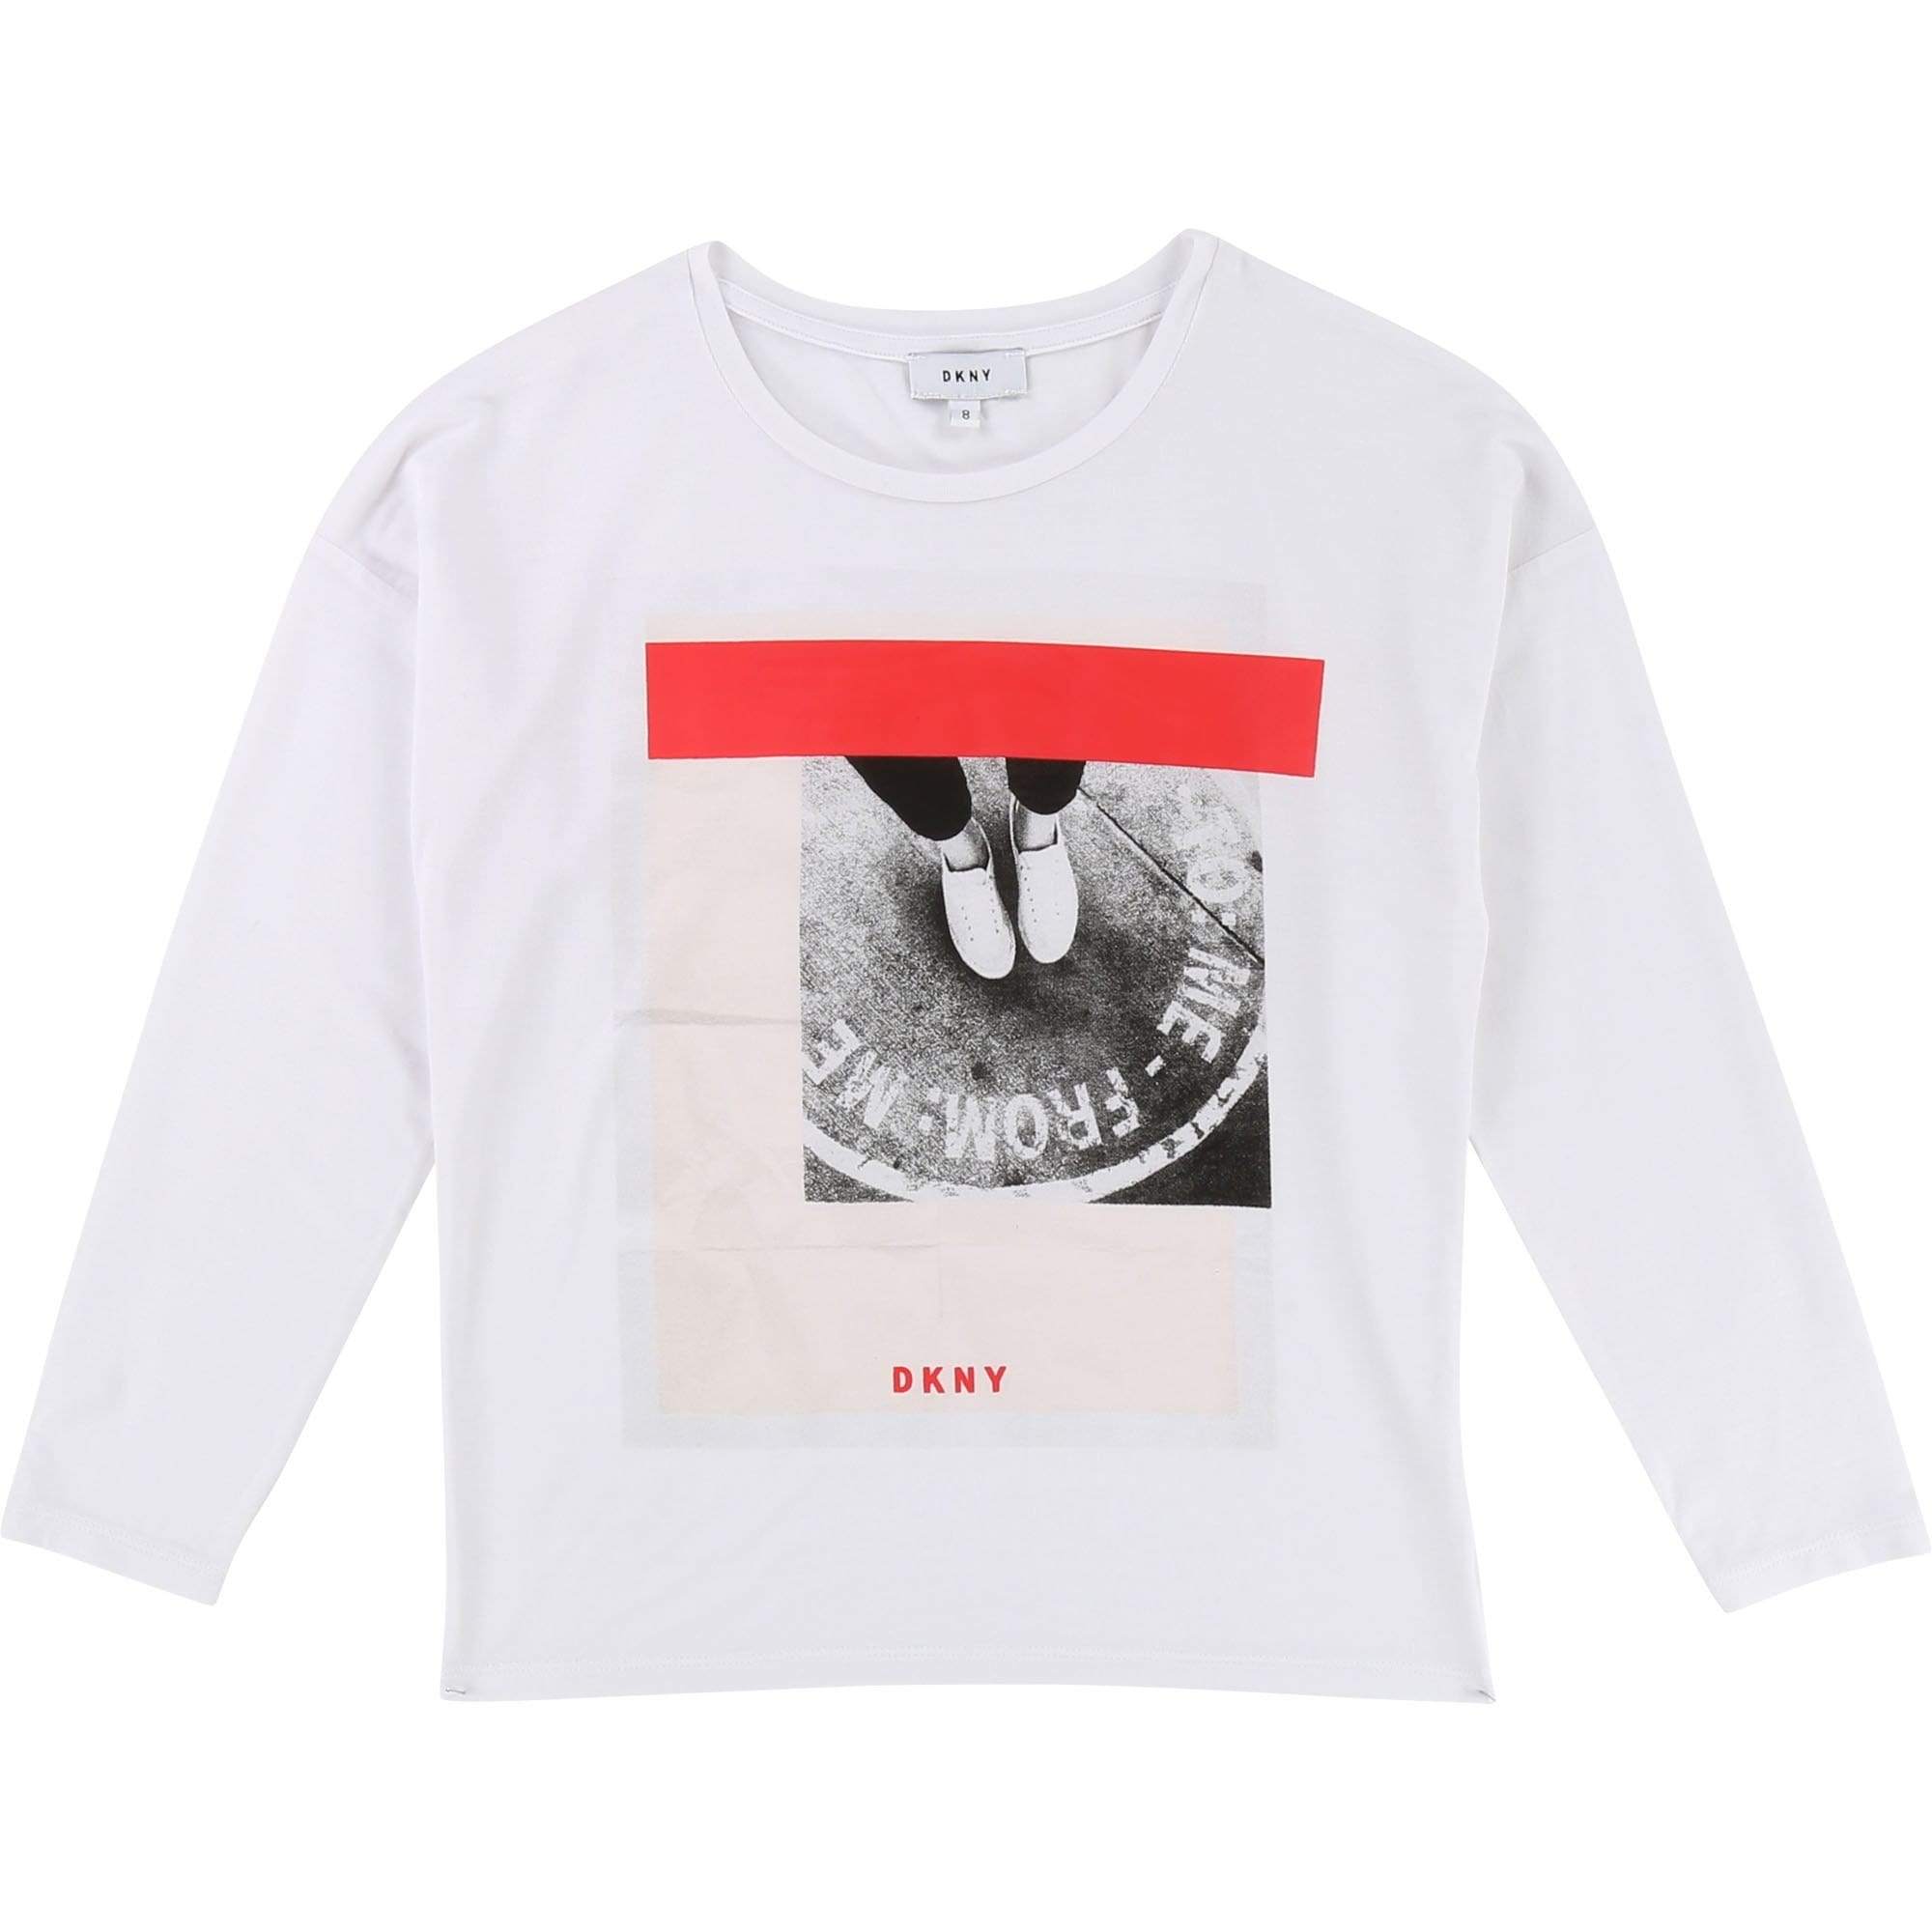 DKNY Girls Long Sleeve Printed T-Shirt